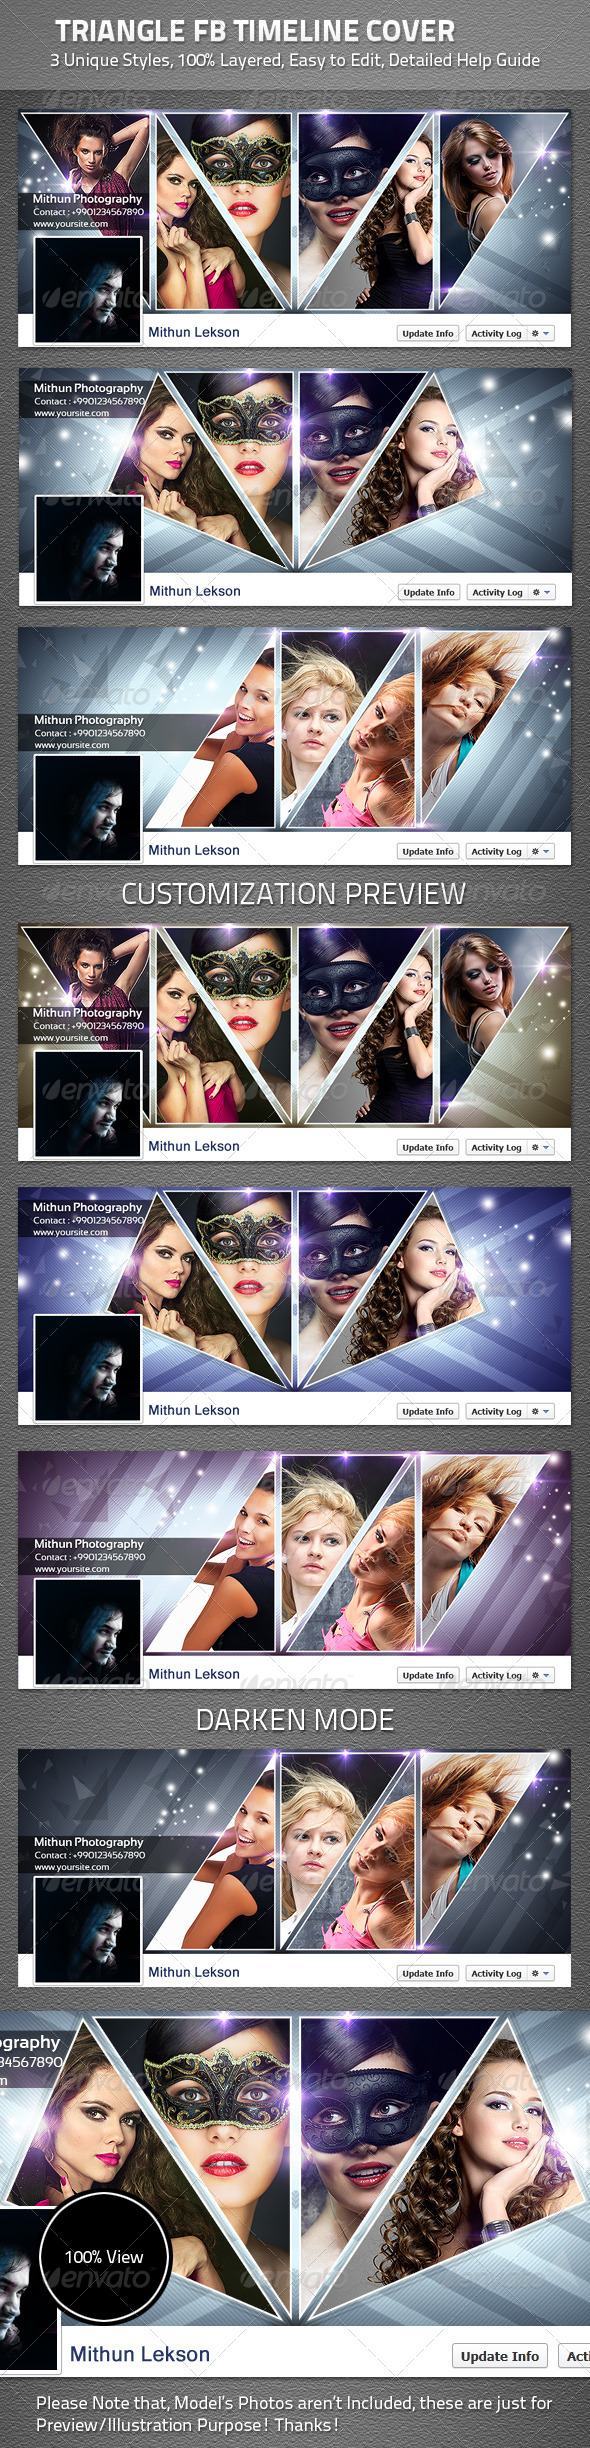 GraphicRiver Triangle FB Timeline Cover 4484923